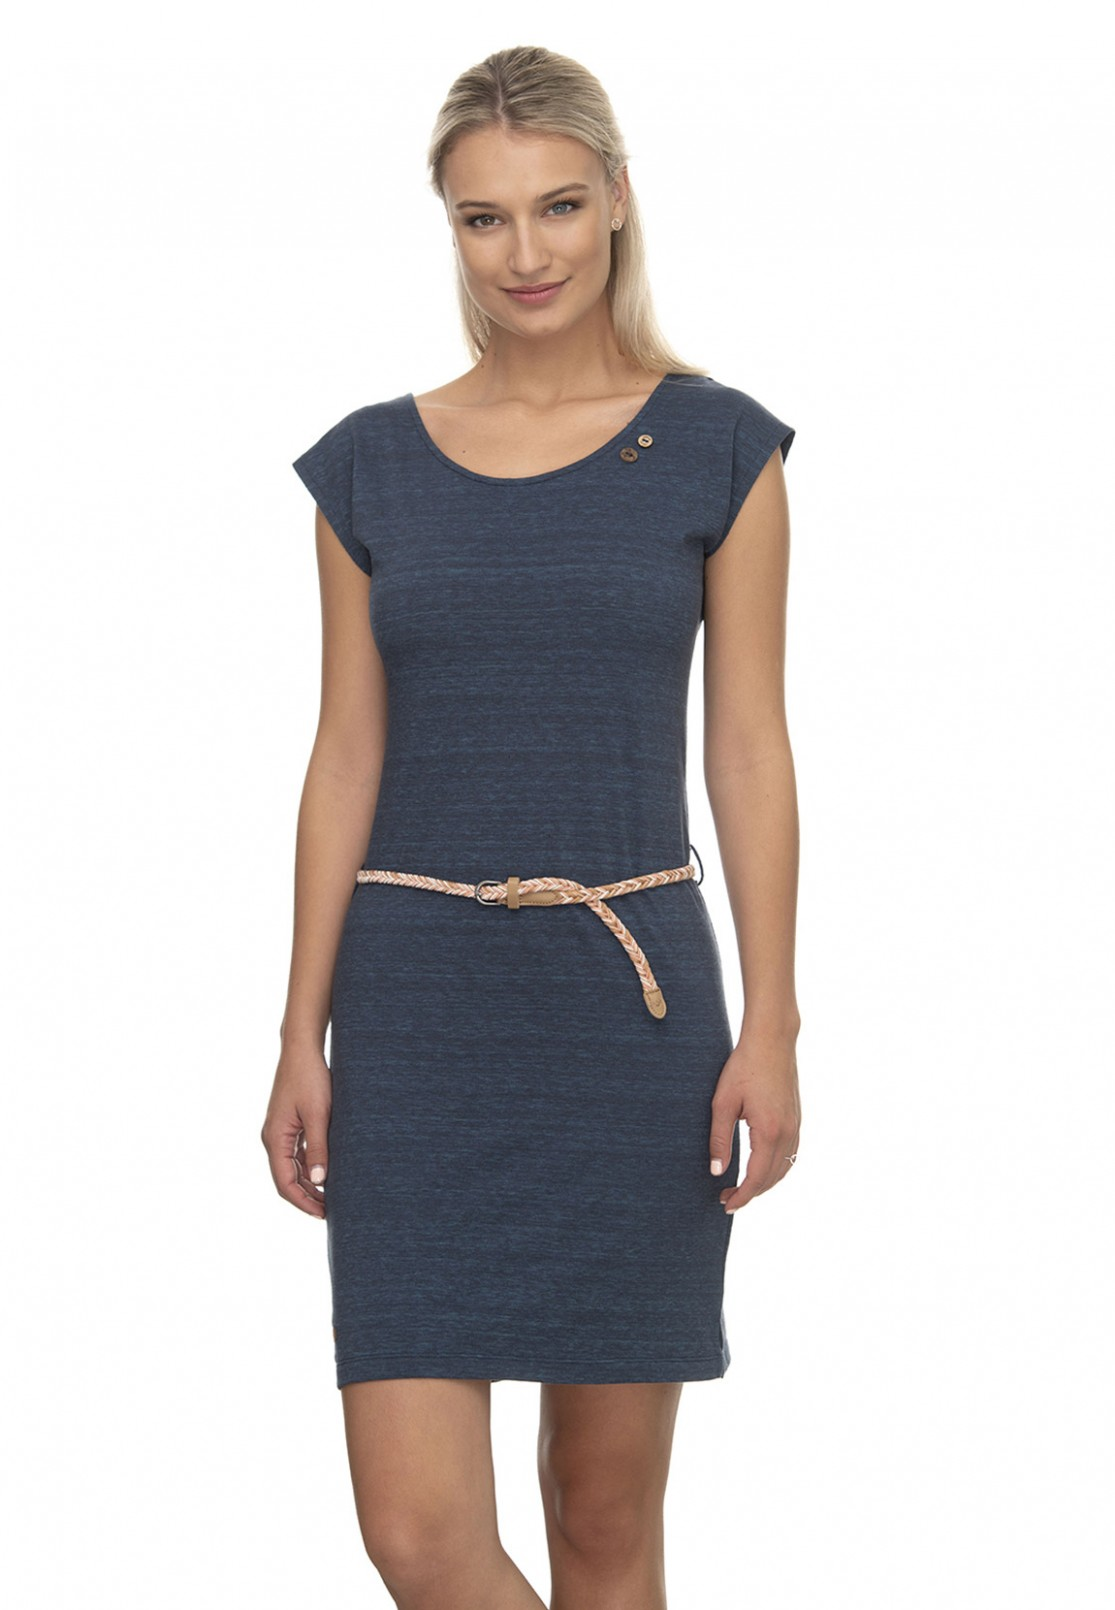 ragwear kleid damen sofia dress 12 12 dunkelblau navy 12 fashioncode